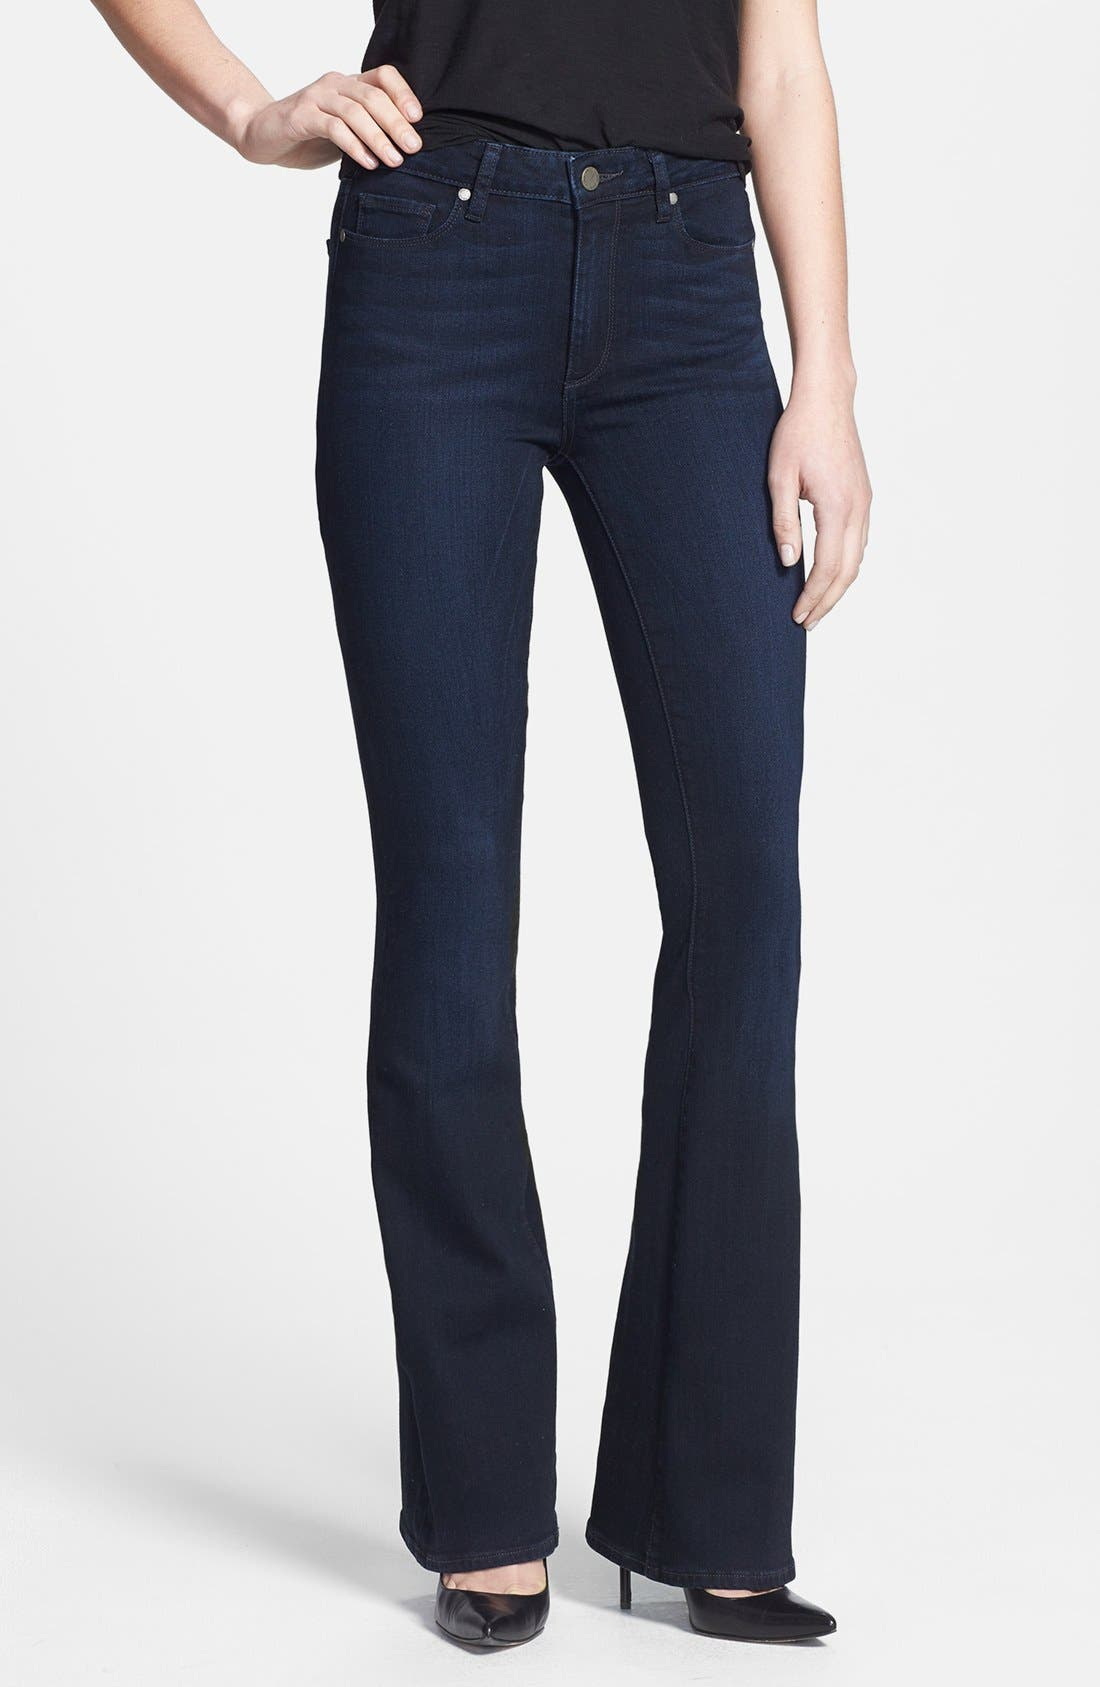 Alternate Image 1 Selected - Paige Denim 'Canyon' High Rise Bell Bottom Jeans (Peyton)